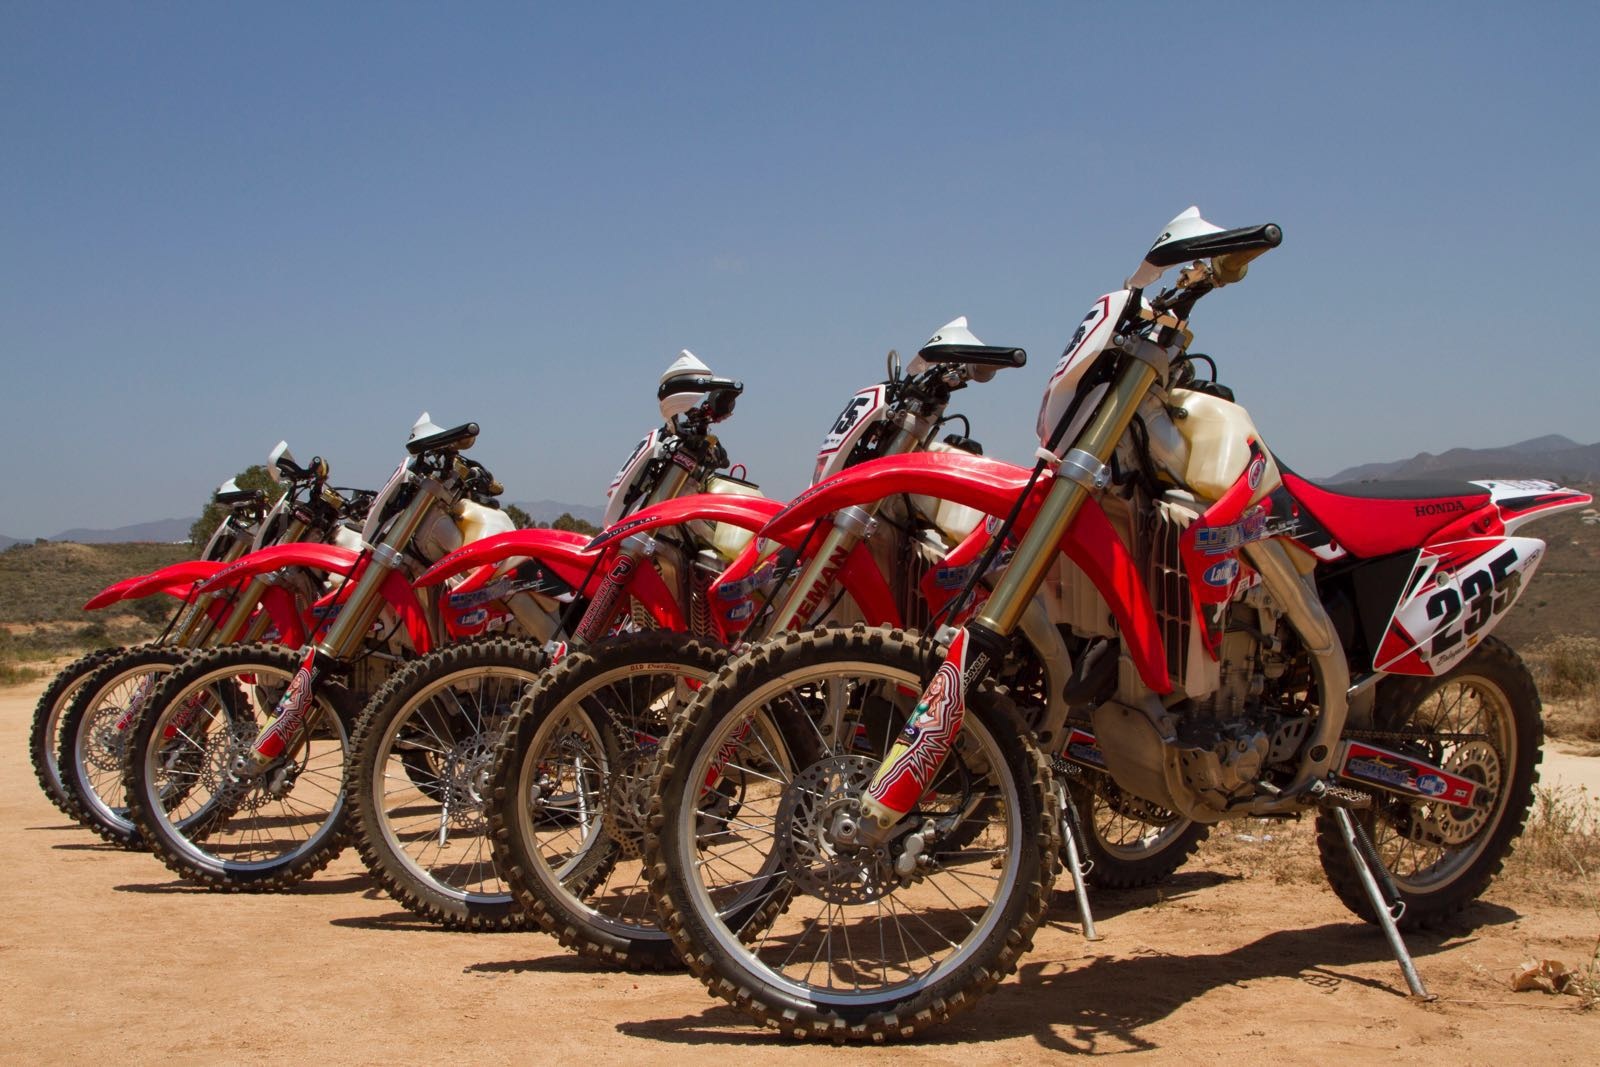 Sell your Dirt bike to us